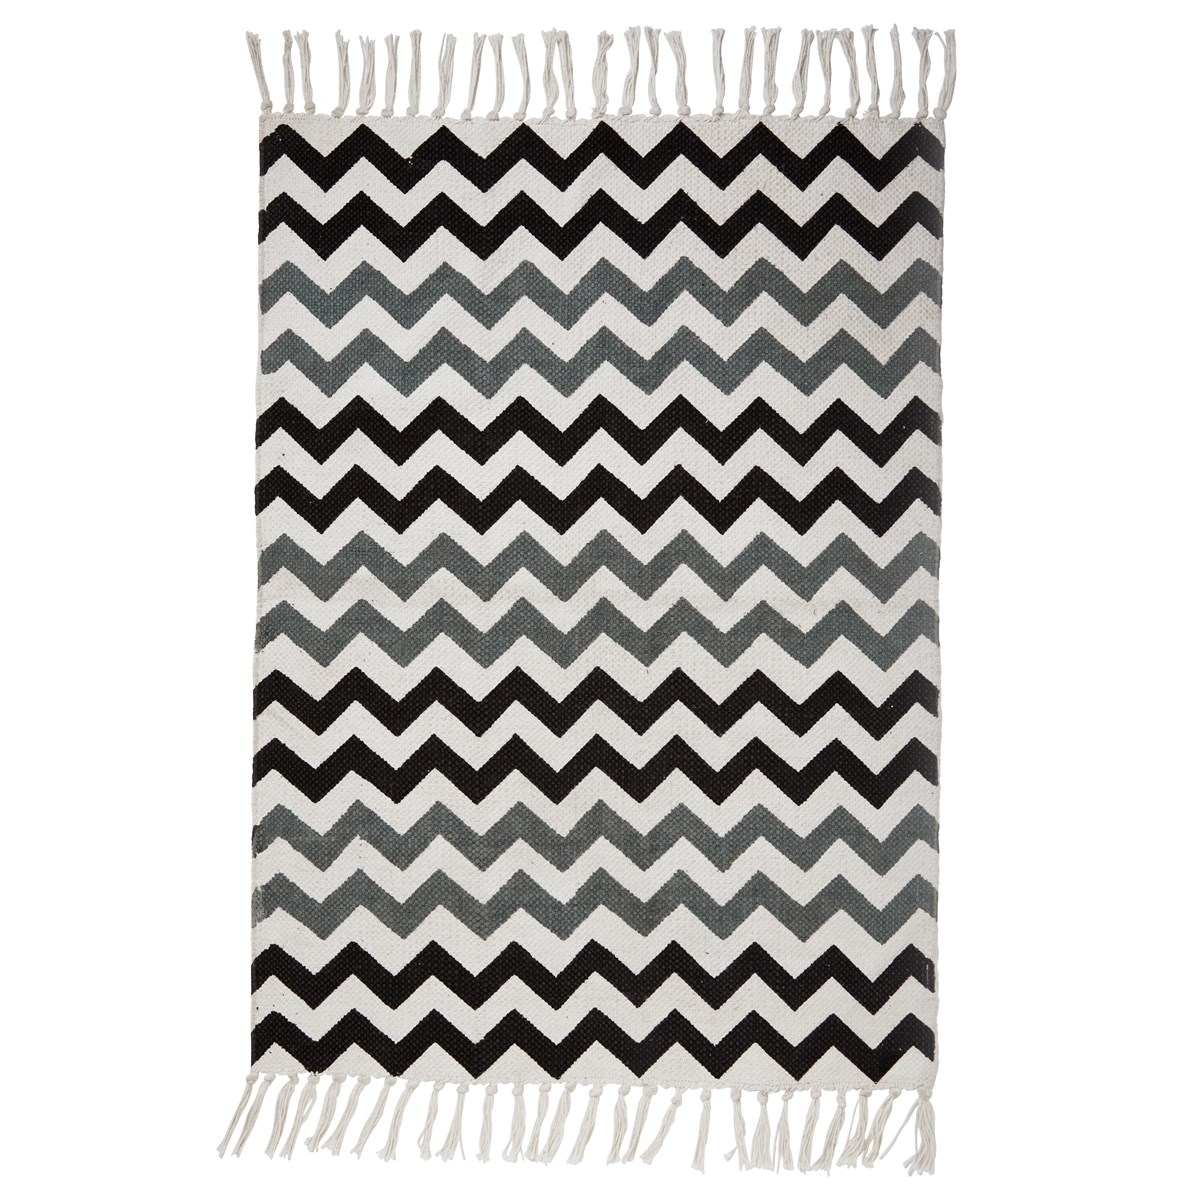 Chevron Rug | Coral Chevron Rug | Nuloom Overstock